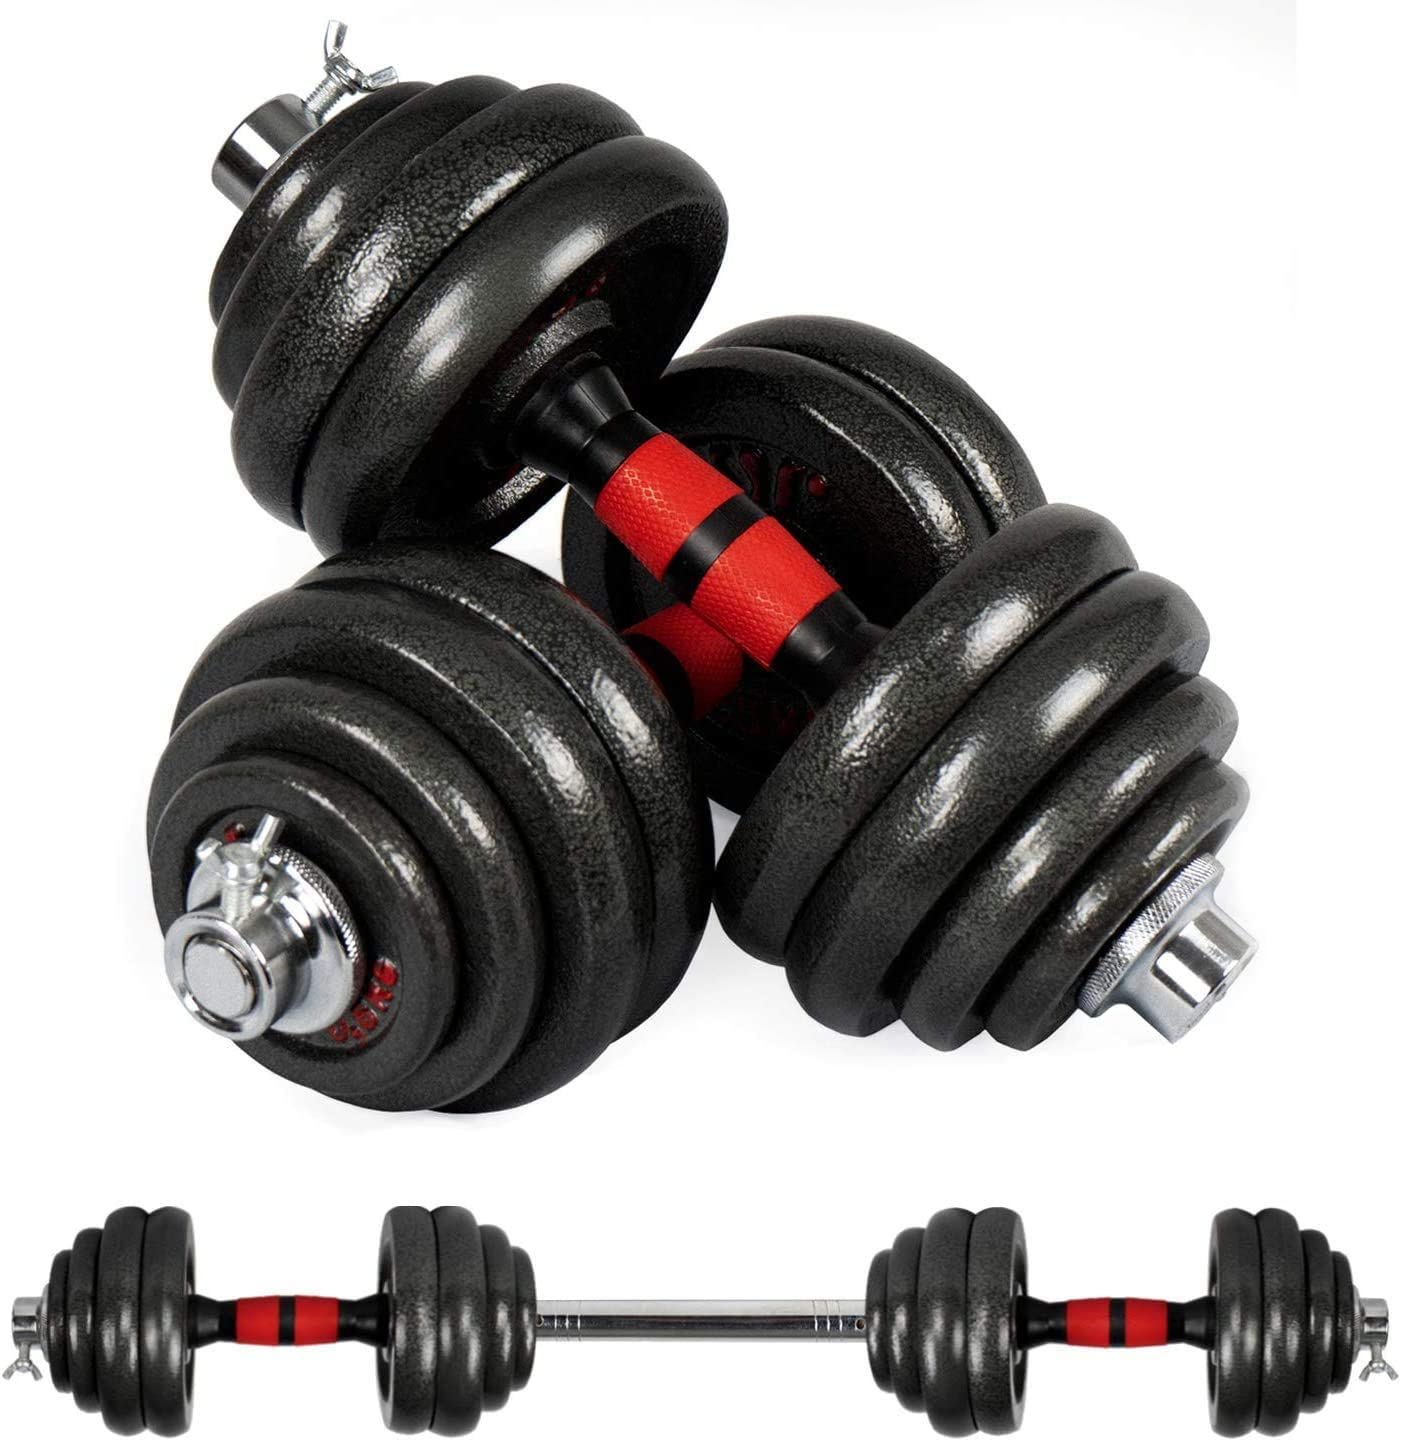 Elevens Adjustable Dumbbells Set, Free Weights Dumbbell Used as Barbell for Home Training 2 Pieces/Set 66lbs